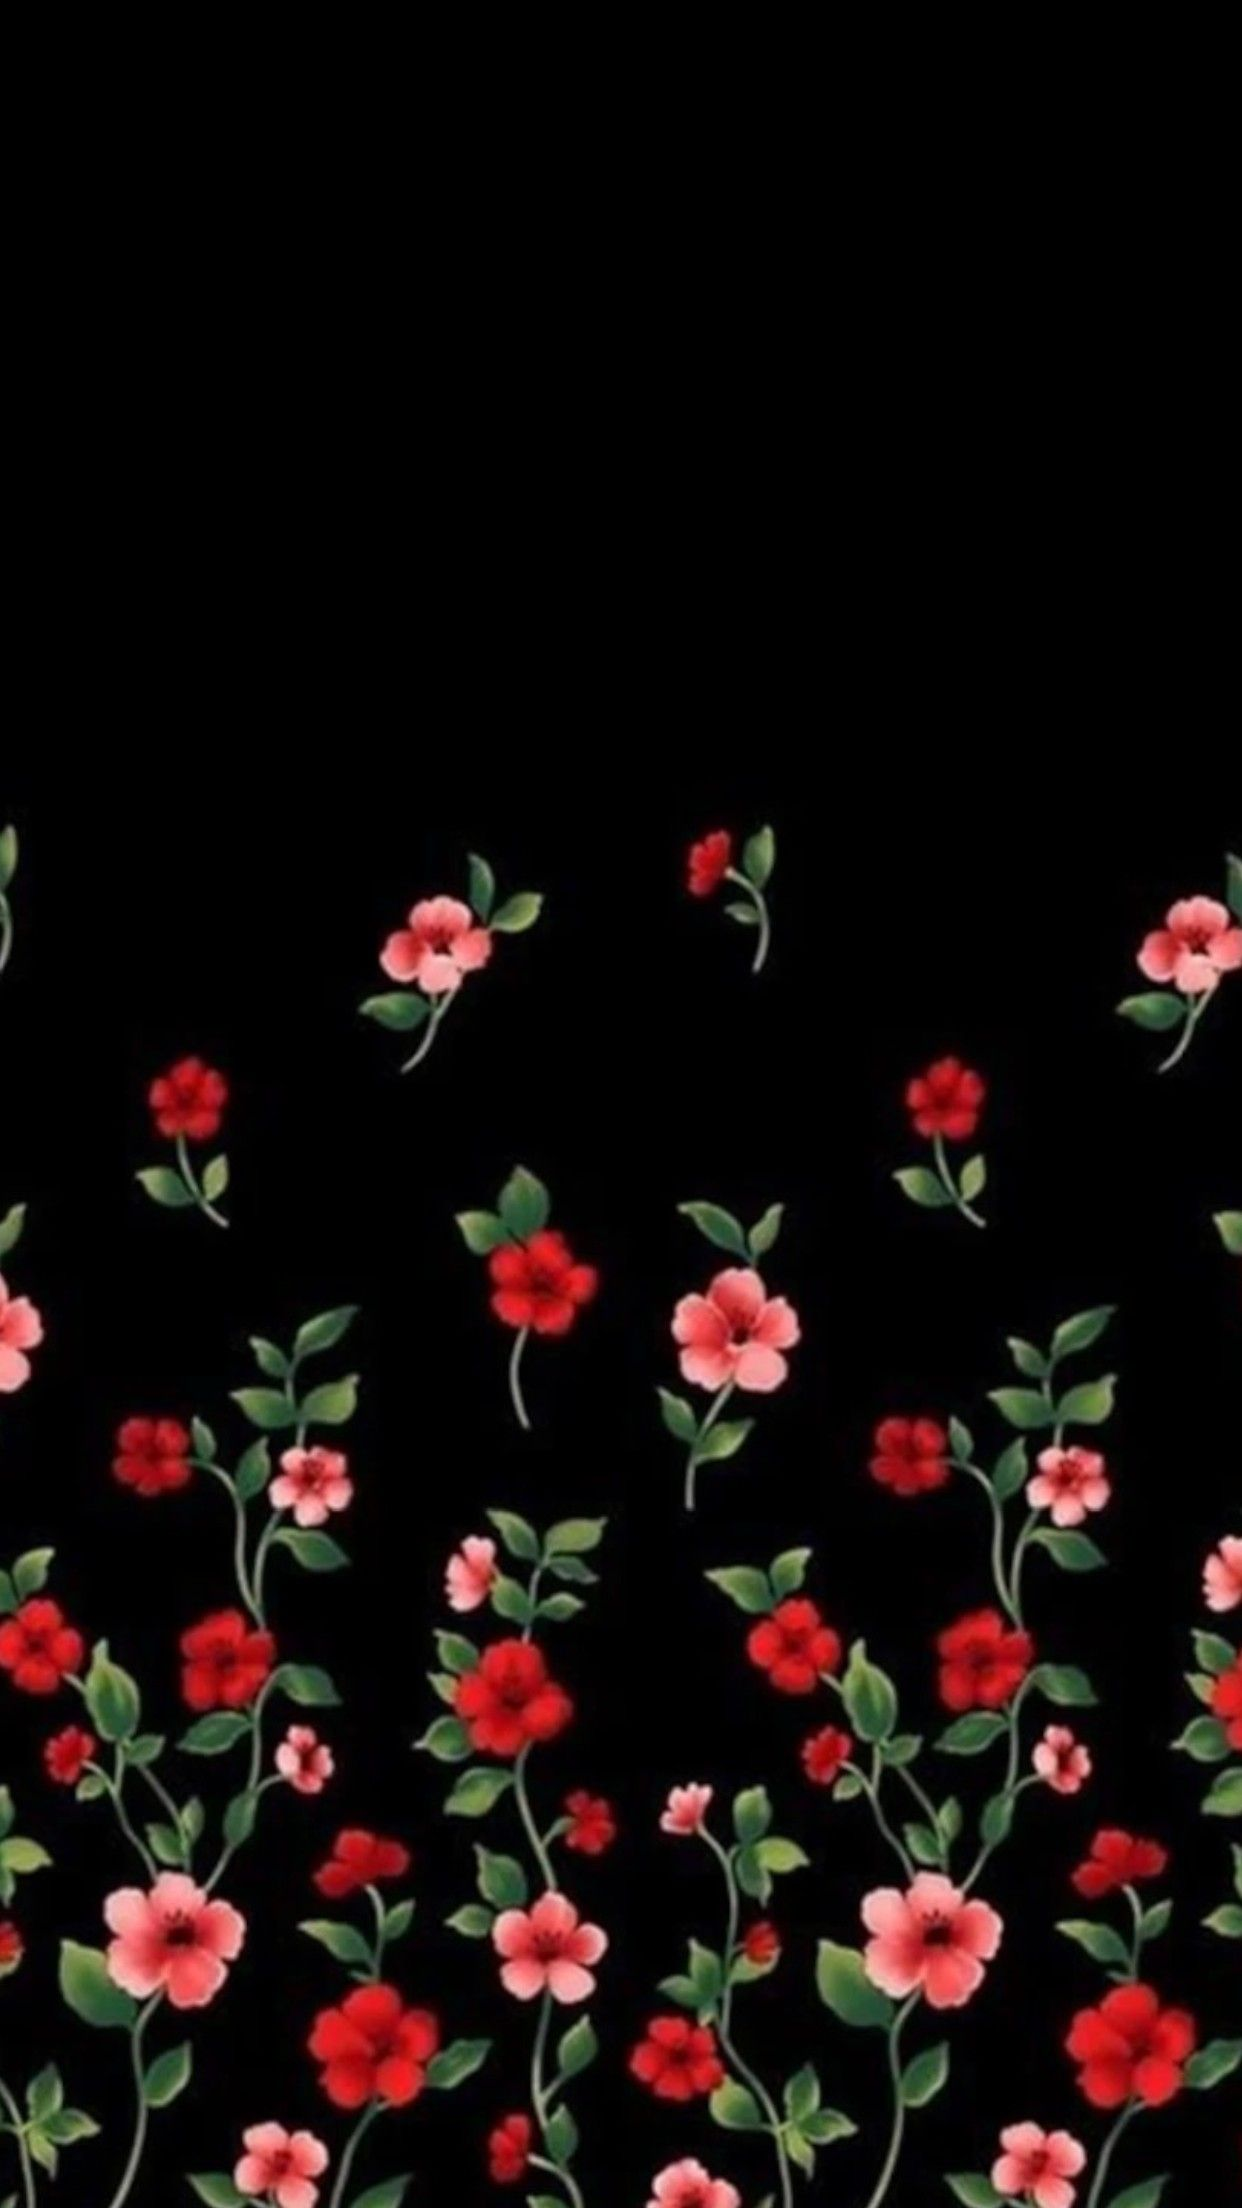 Dark Flower Wallpapers Top Free Dark Flower Backgrounds